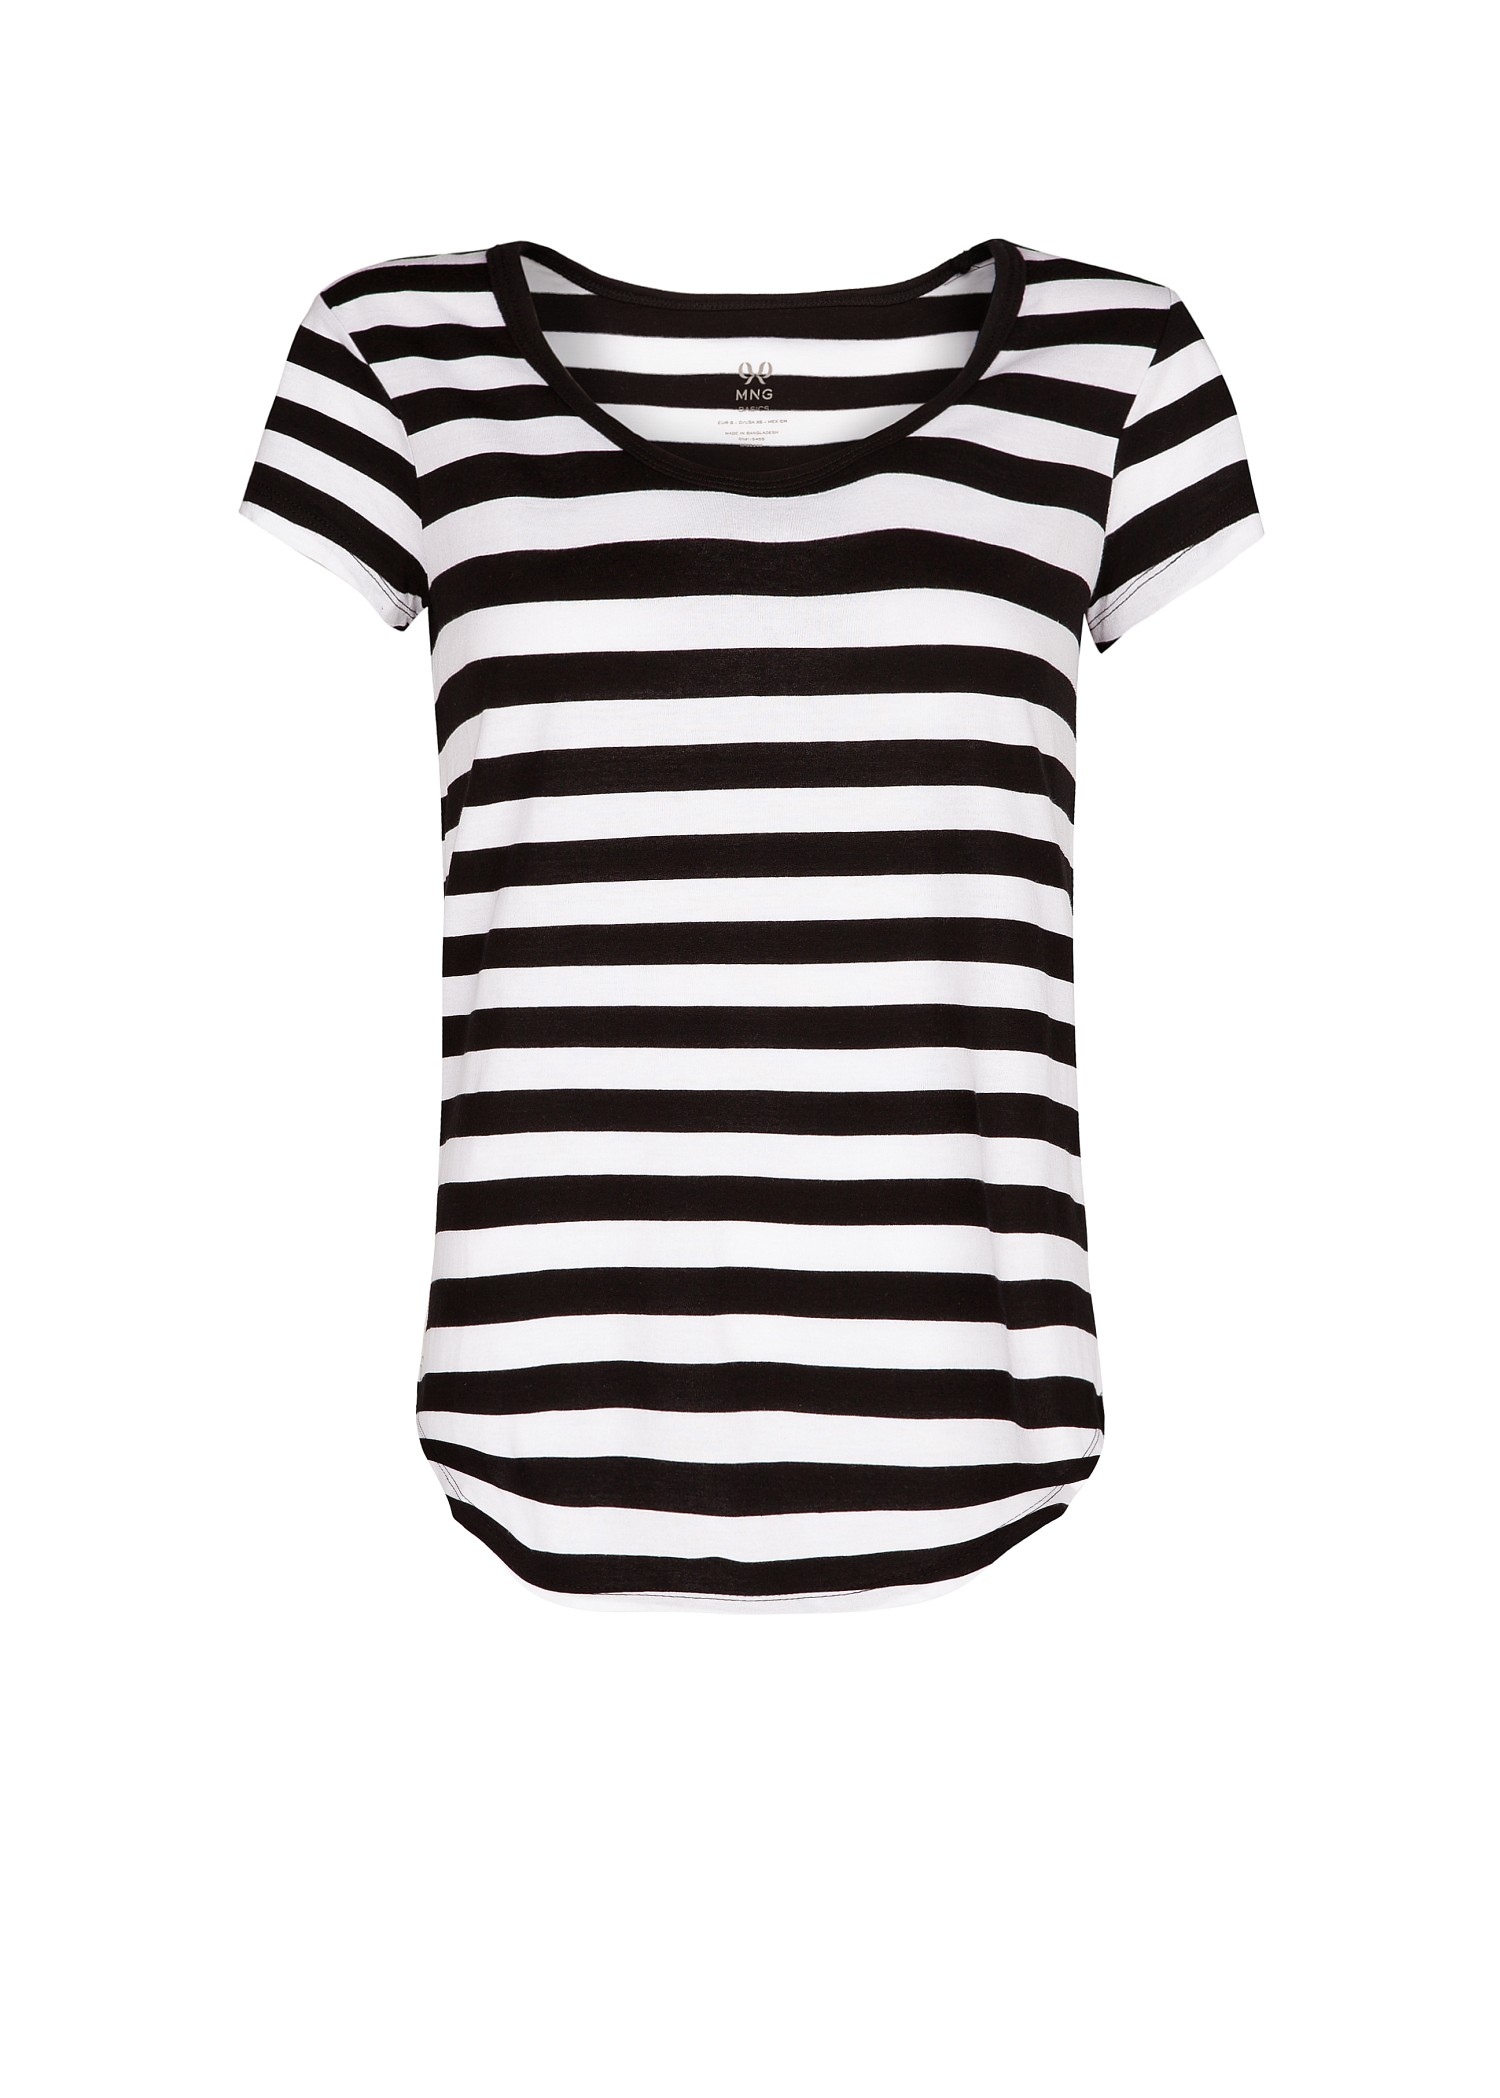 Adult Women's Long Sleeve Striped Shirt Black / White Womens Black & White Striped T-Shirt % Cotton by Striped Apparel. Black And White Striped Shirts For Women. OUGES Loose Casual Tops T-Shirt for Womens,Long Sleeve,Striped Pattern,Black,XX-Large.